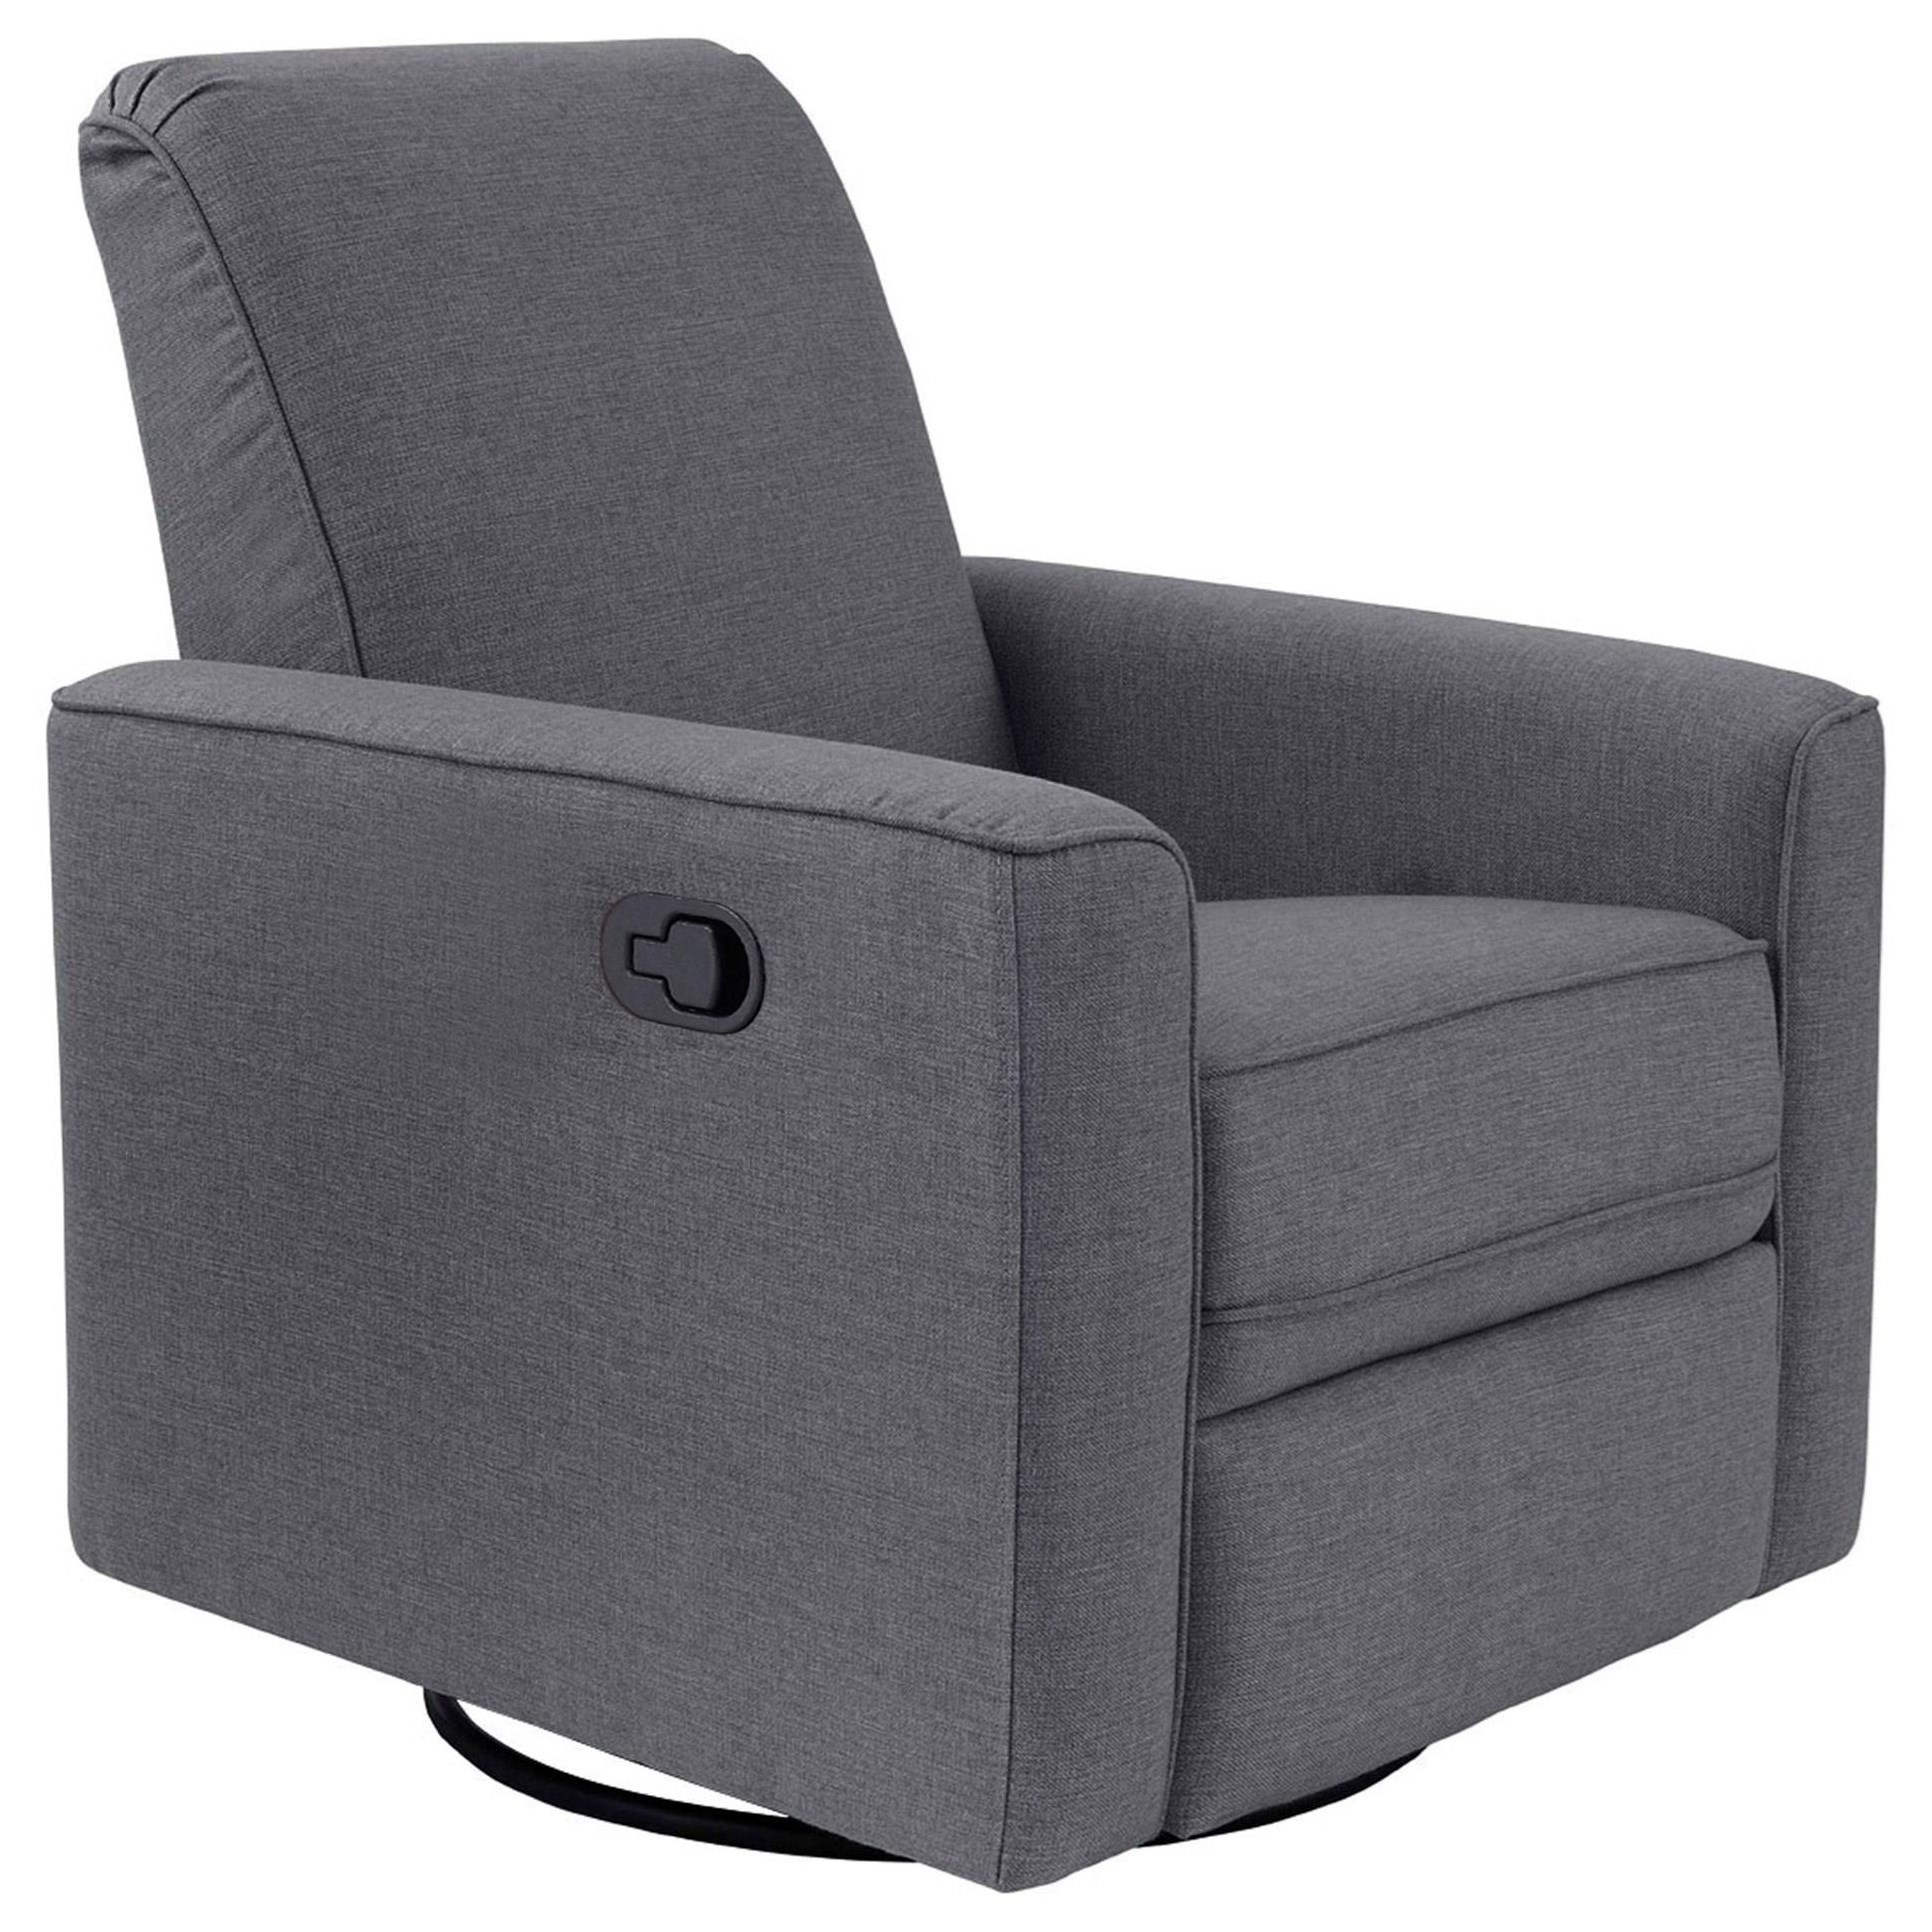 Aspen Manual Swivel Glider Recliner by Westwood Design at Virginia Furniture Market